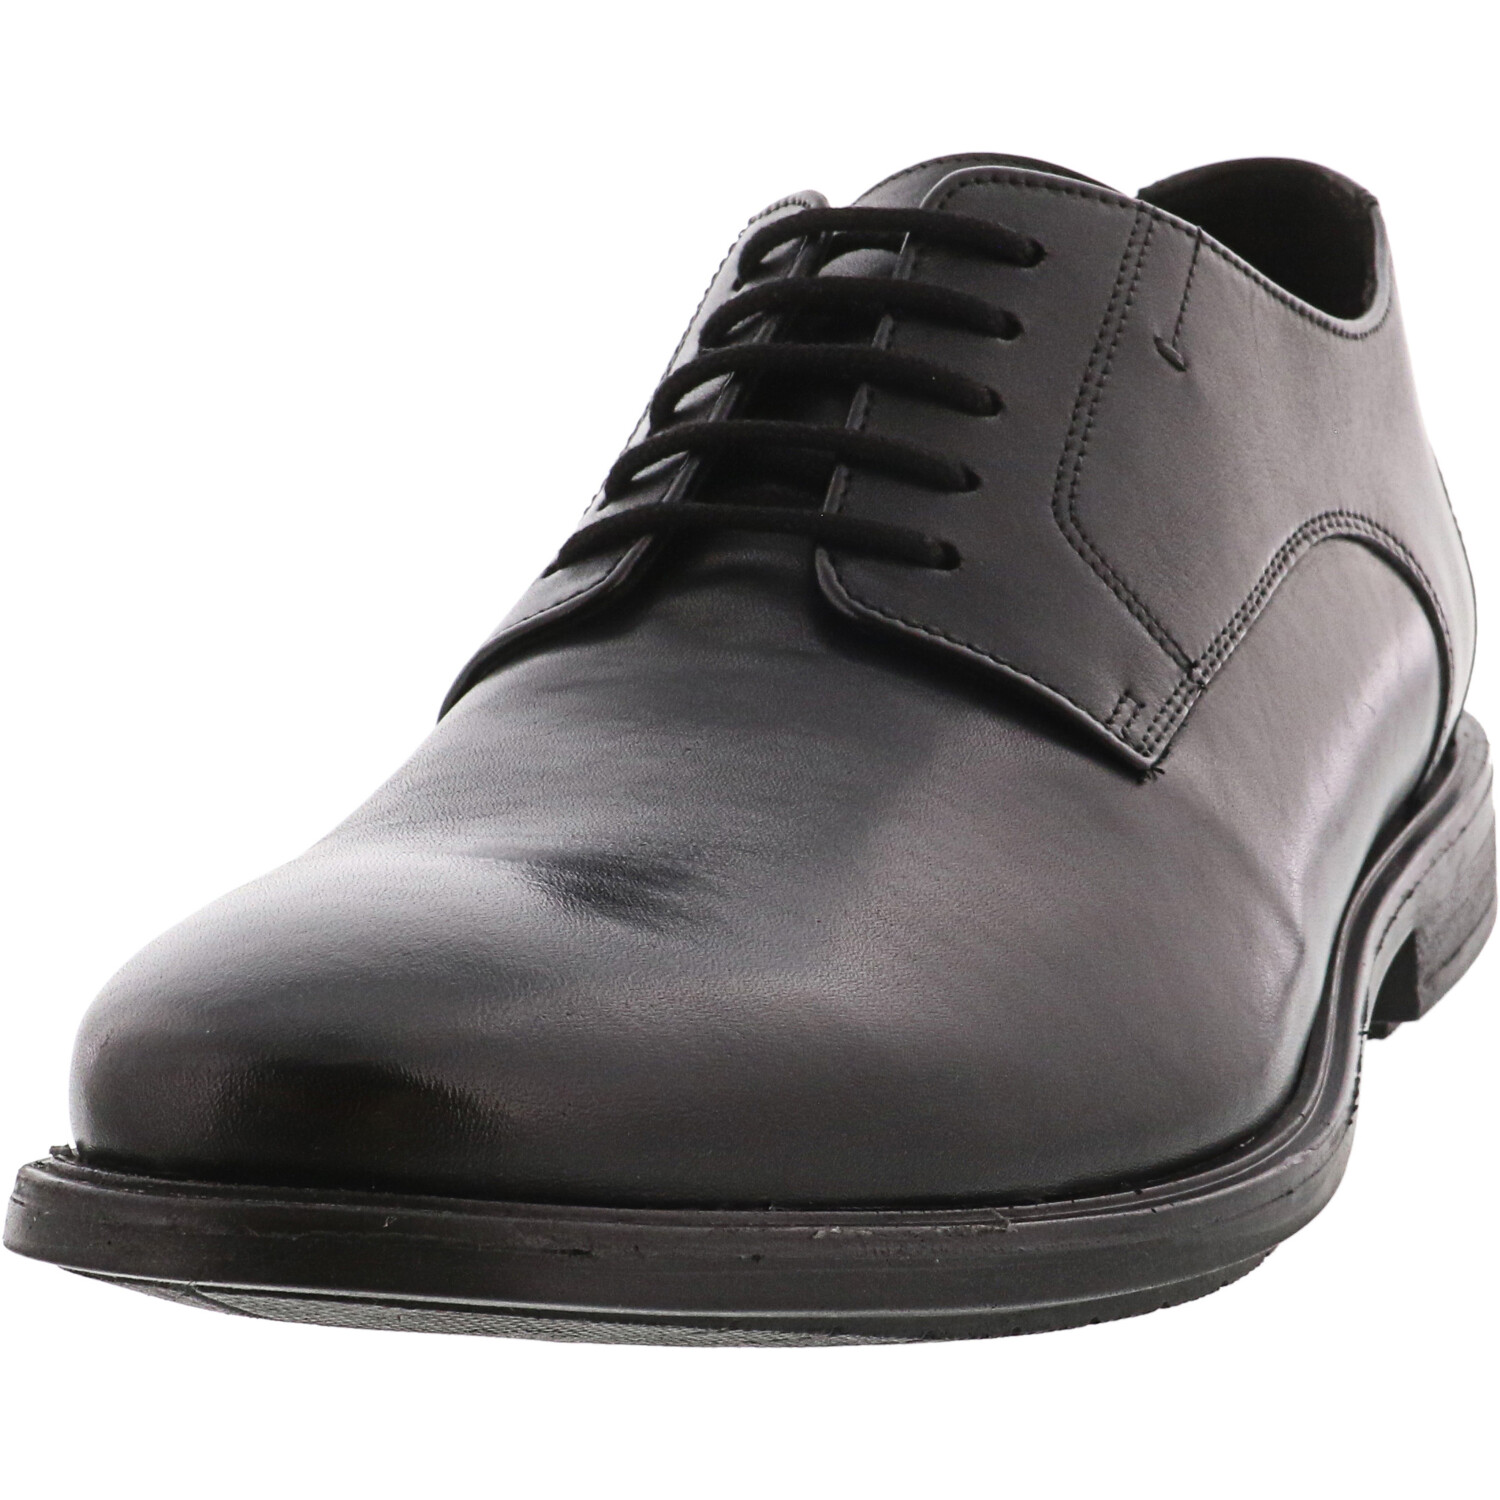 Bostonian Men's Hampshire Low Black Ankle-High Leather Oxford - 11.5M